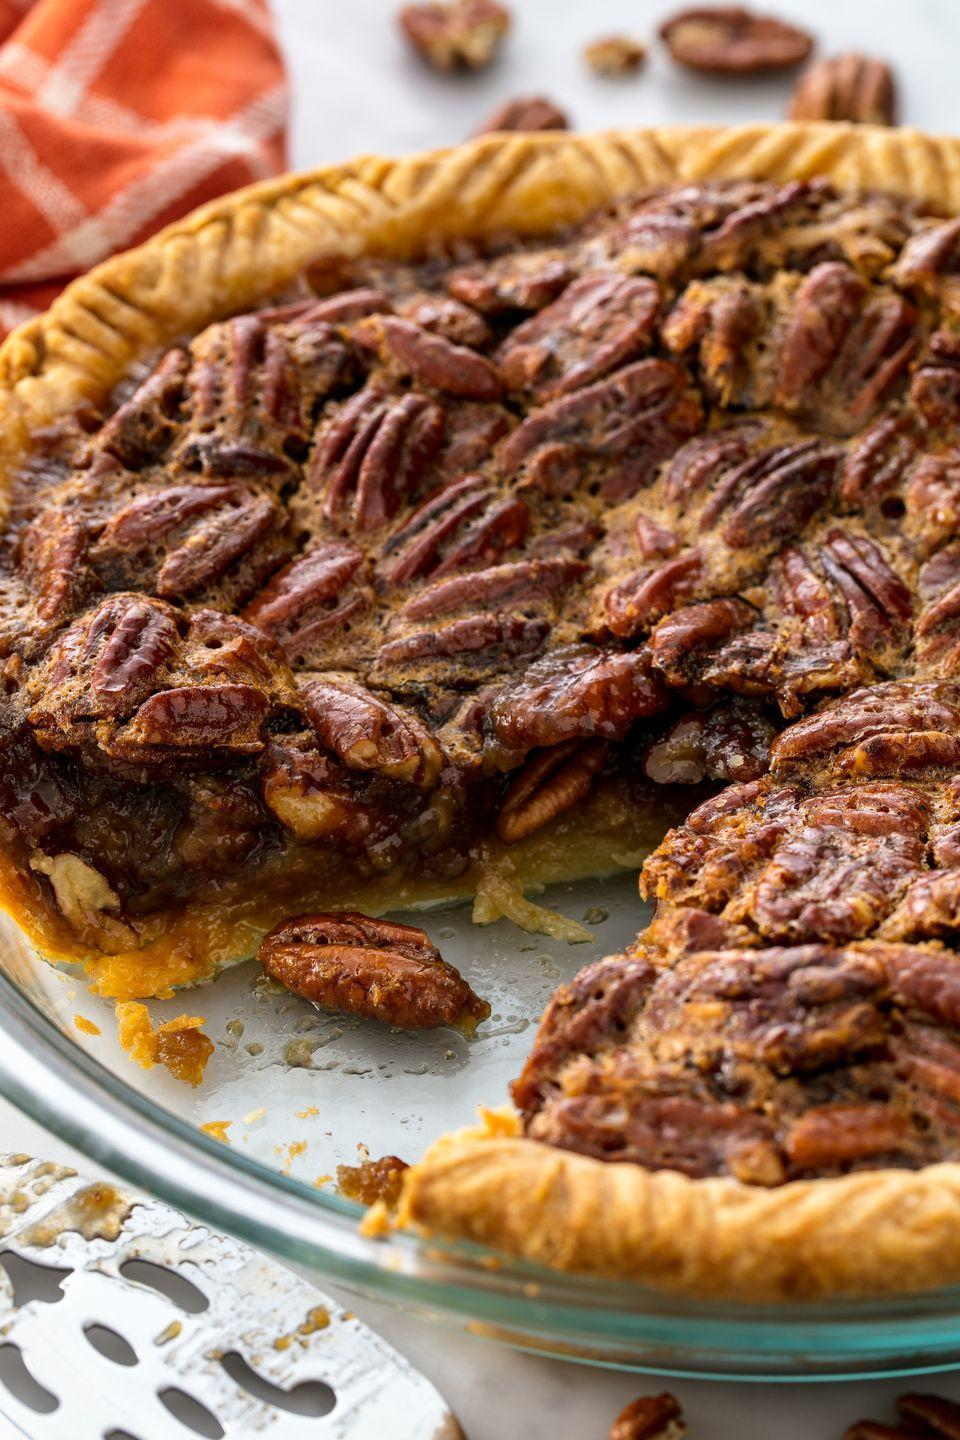 """<p>Nothing screams Thanksgiving more than a classic pecan pie.</p><p>Get the recipe from <a href=""""https://www.delish.com/cooking/recipe-ideas/recipes/a55685/easy-pecan-pie-recipe/"""" rel=""""nofollow noopener"""" target=""""_blank"""" data-ylk=""""slk:Delish"""" class=""""link rapid-noclick-resp"""">Delish</a>.</p>"""